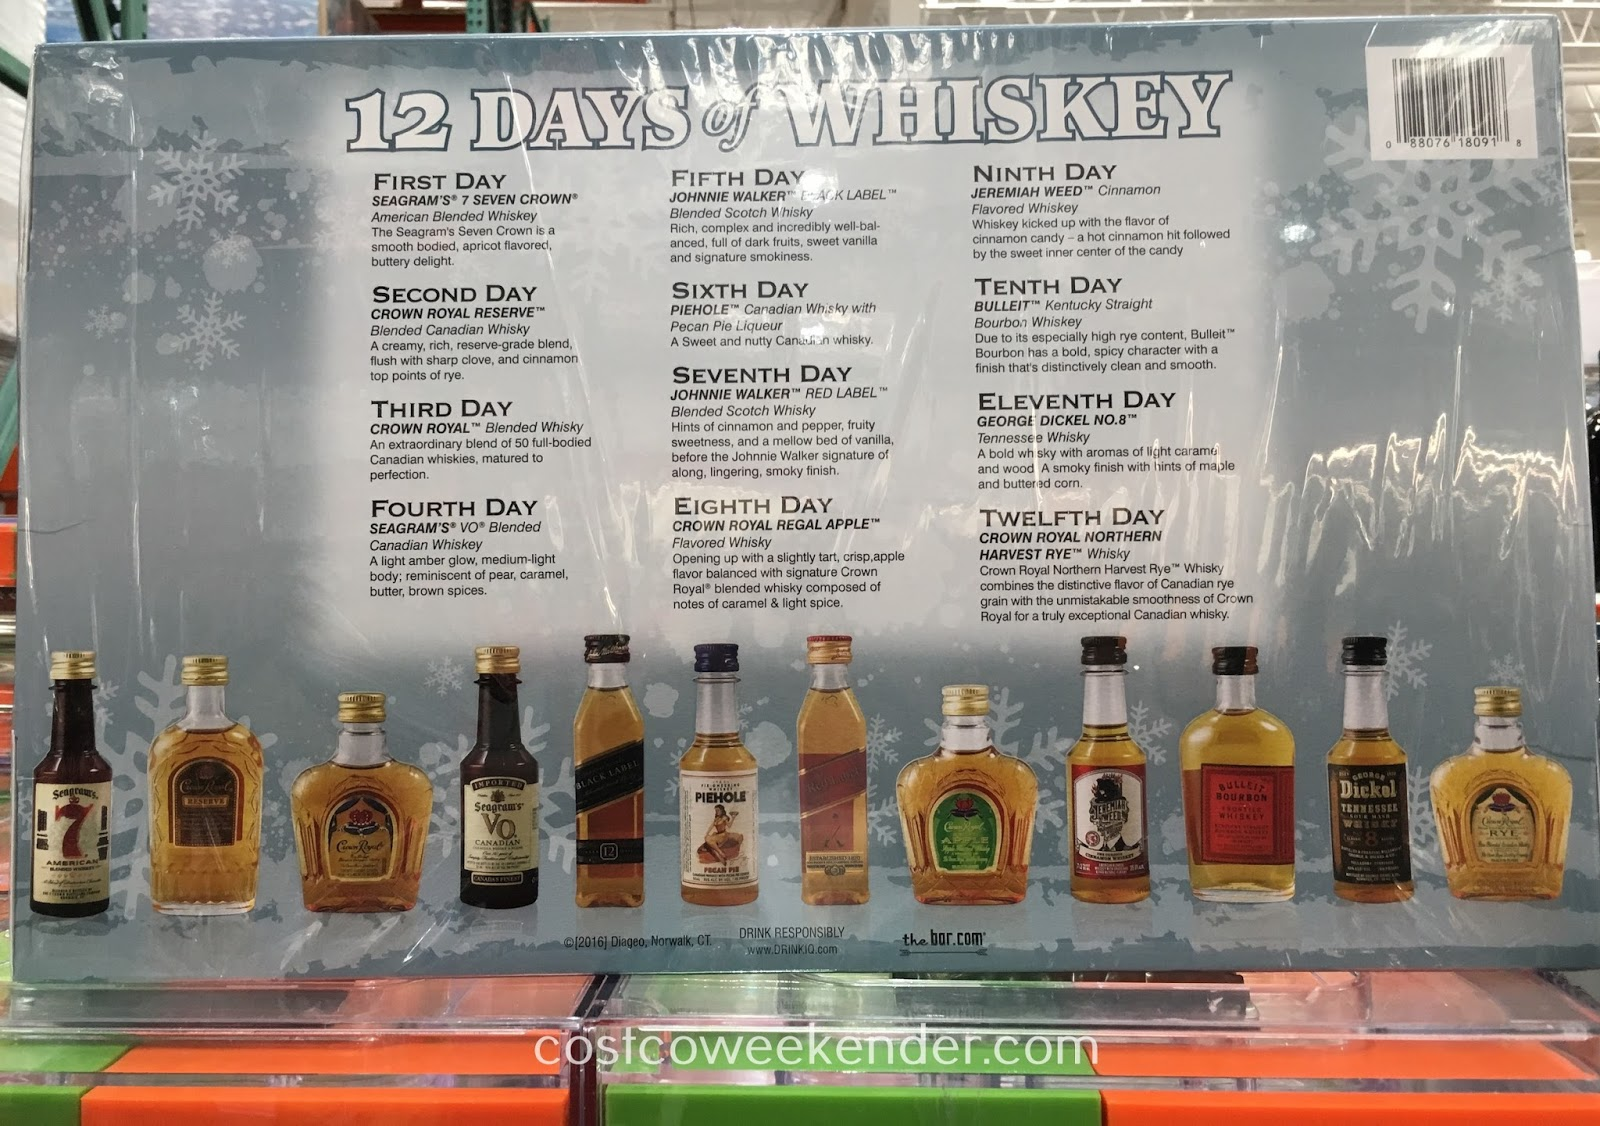 Costco 1111768 - 12 Days of Whiskey Variety Gift Pack - great as a gift or for yourself